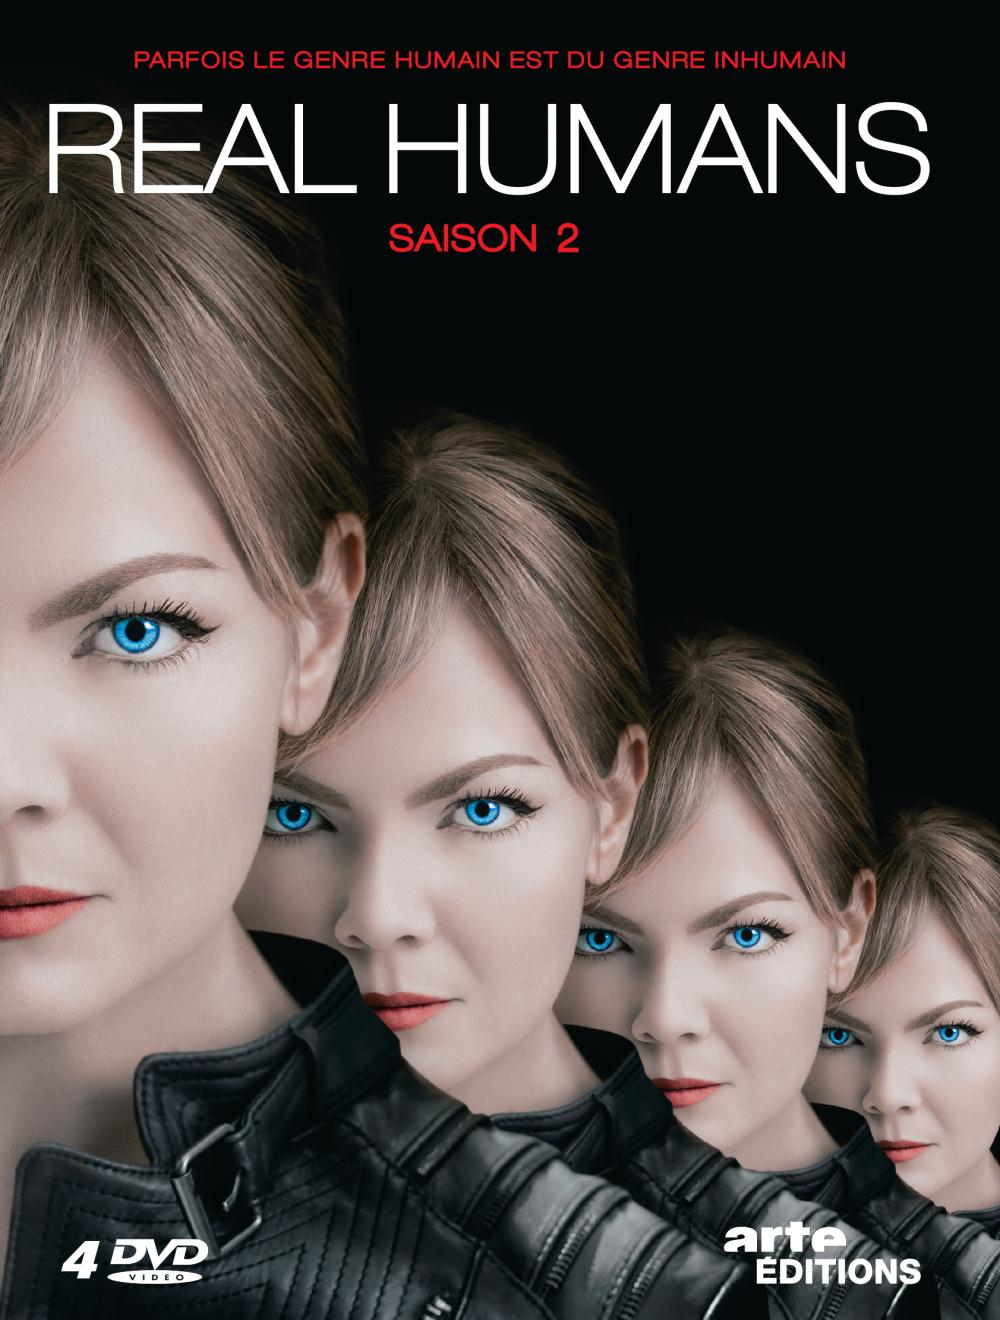 Real Humans: Season 2